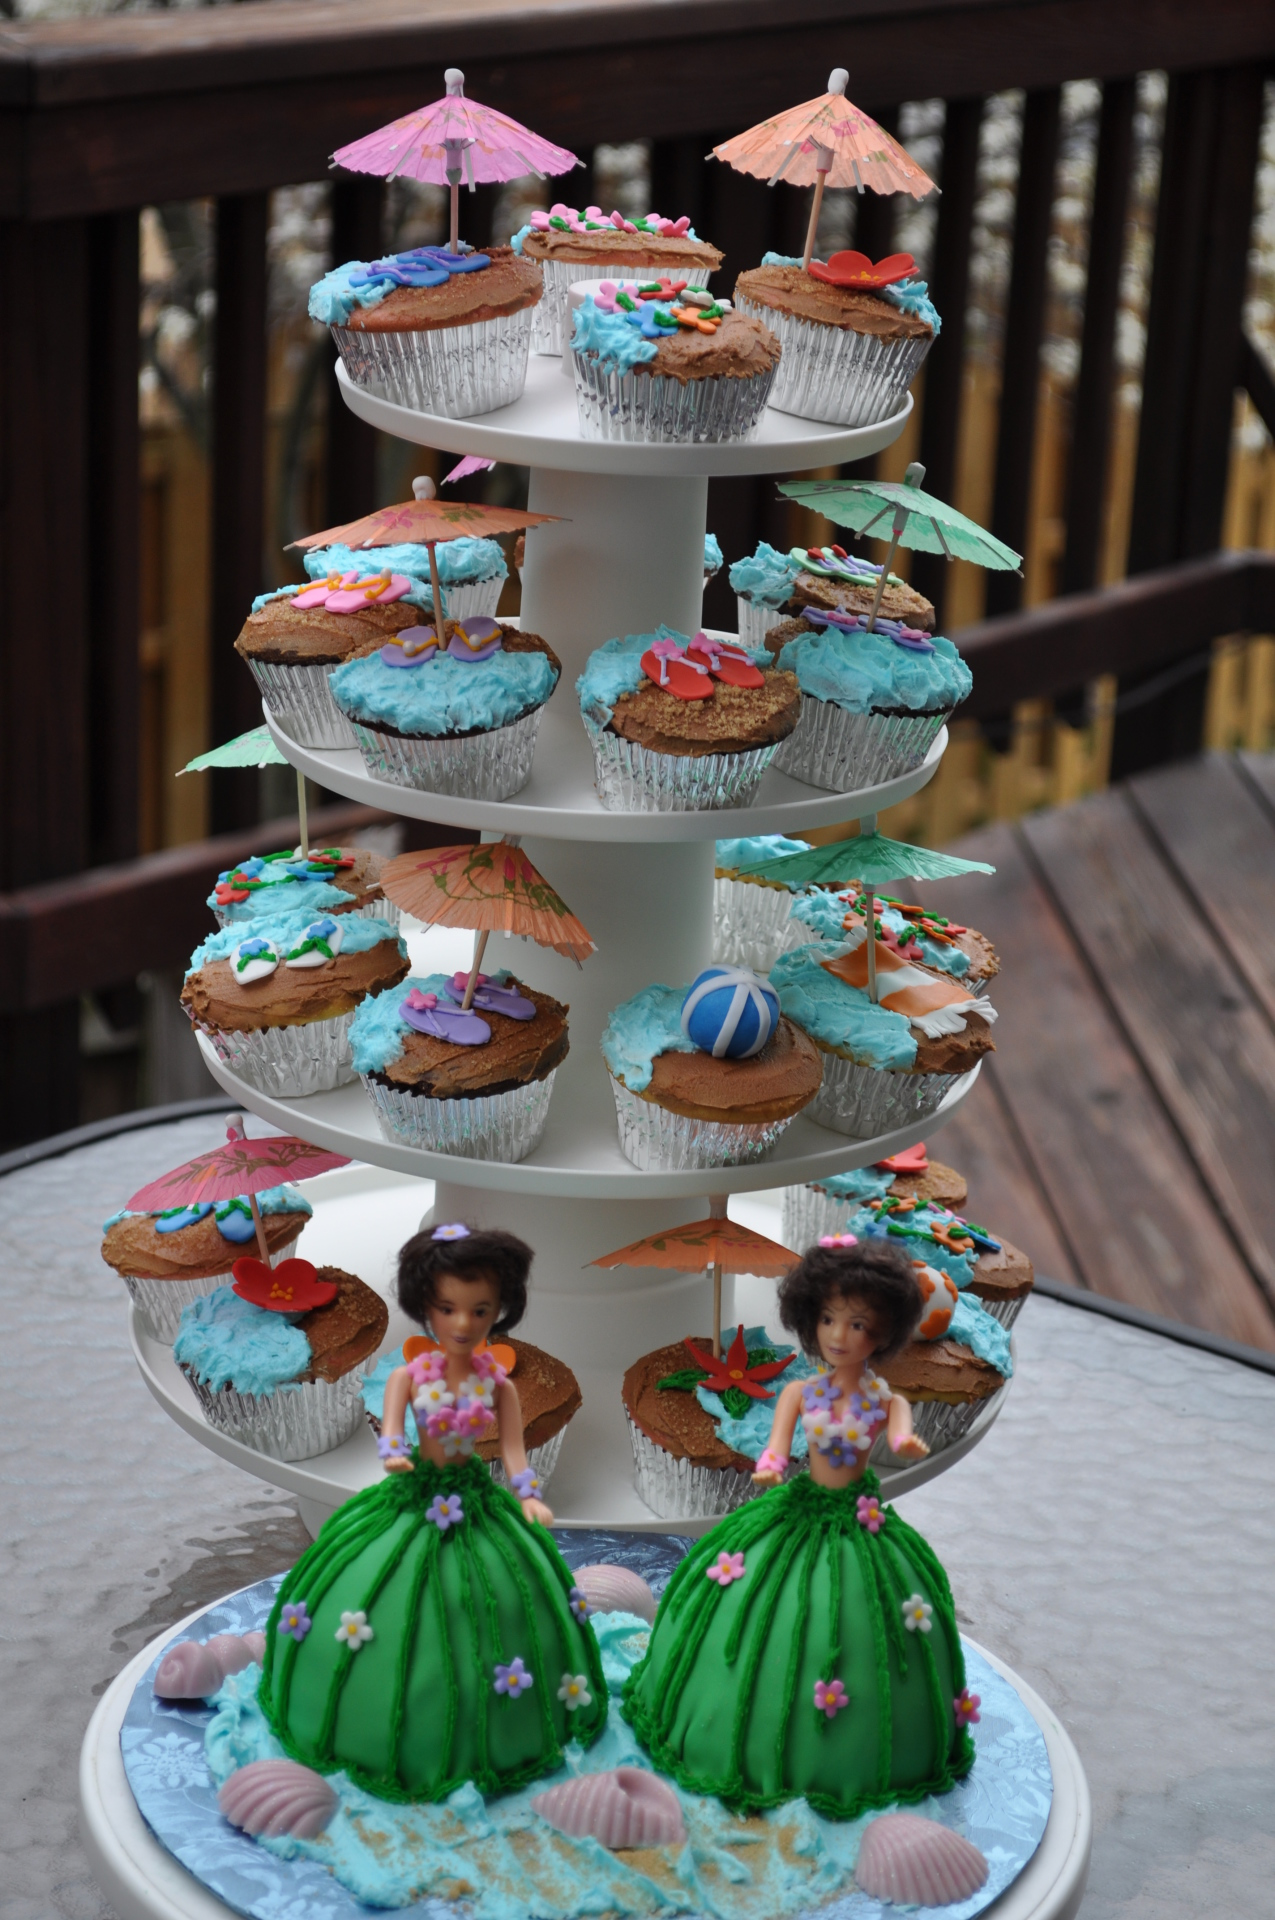 Beach theme cake,Hula doll cake, Hawaiian theme birthday cake,beach cupcakes,umbrella cupcakes